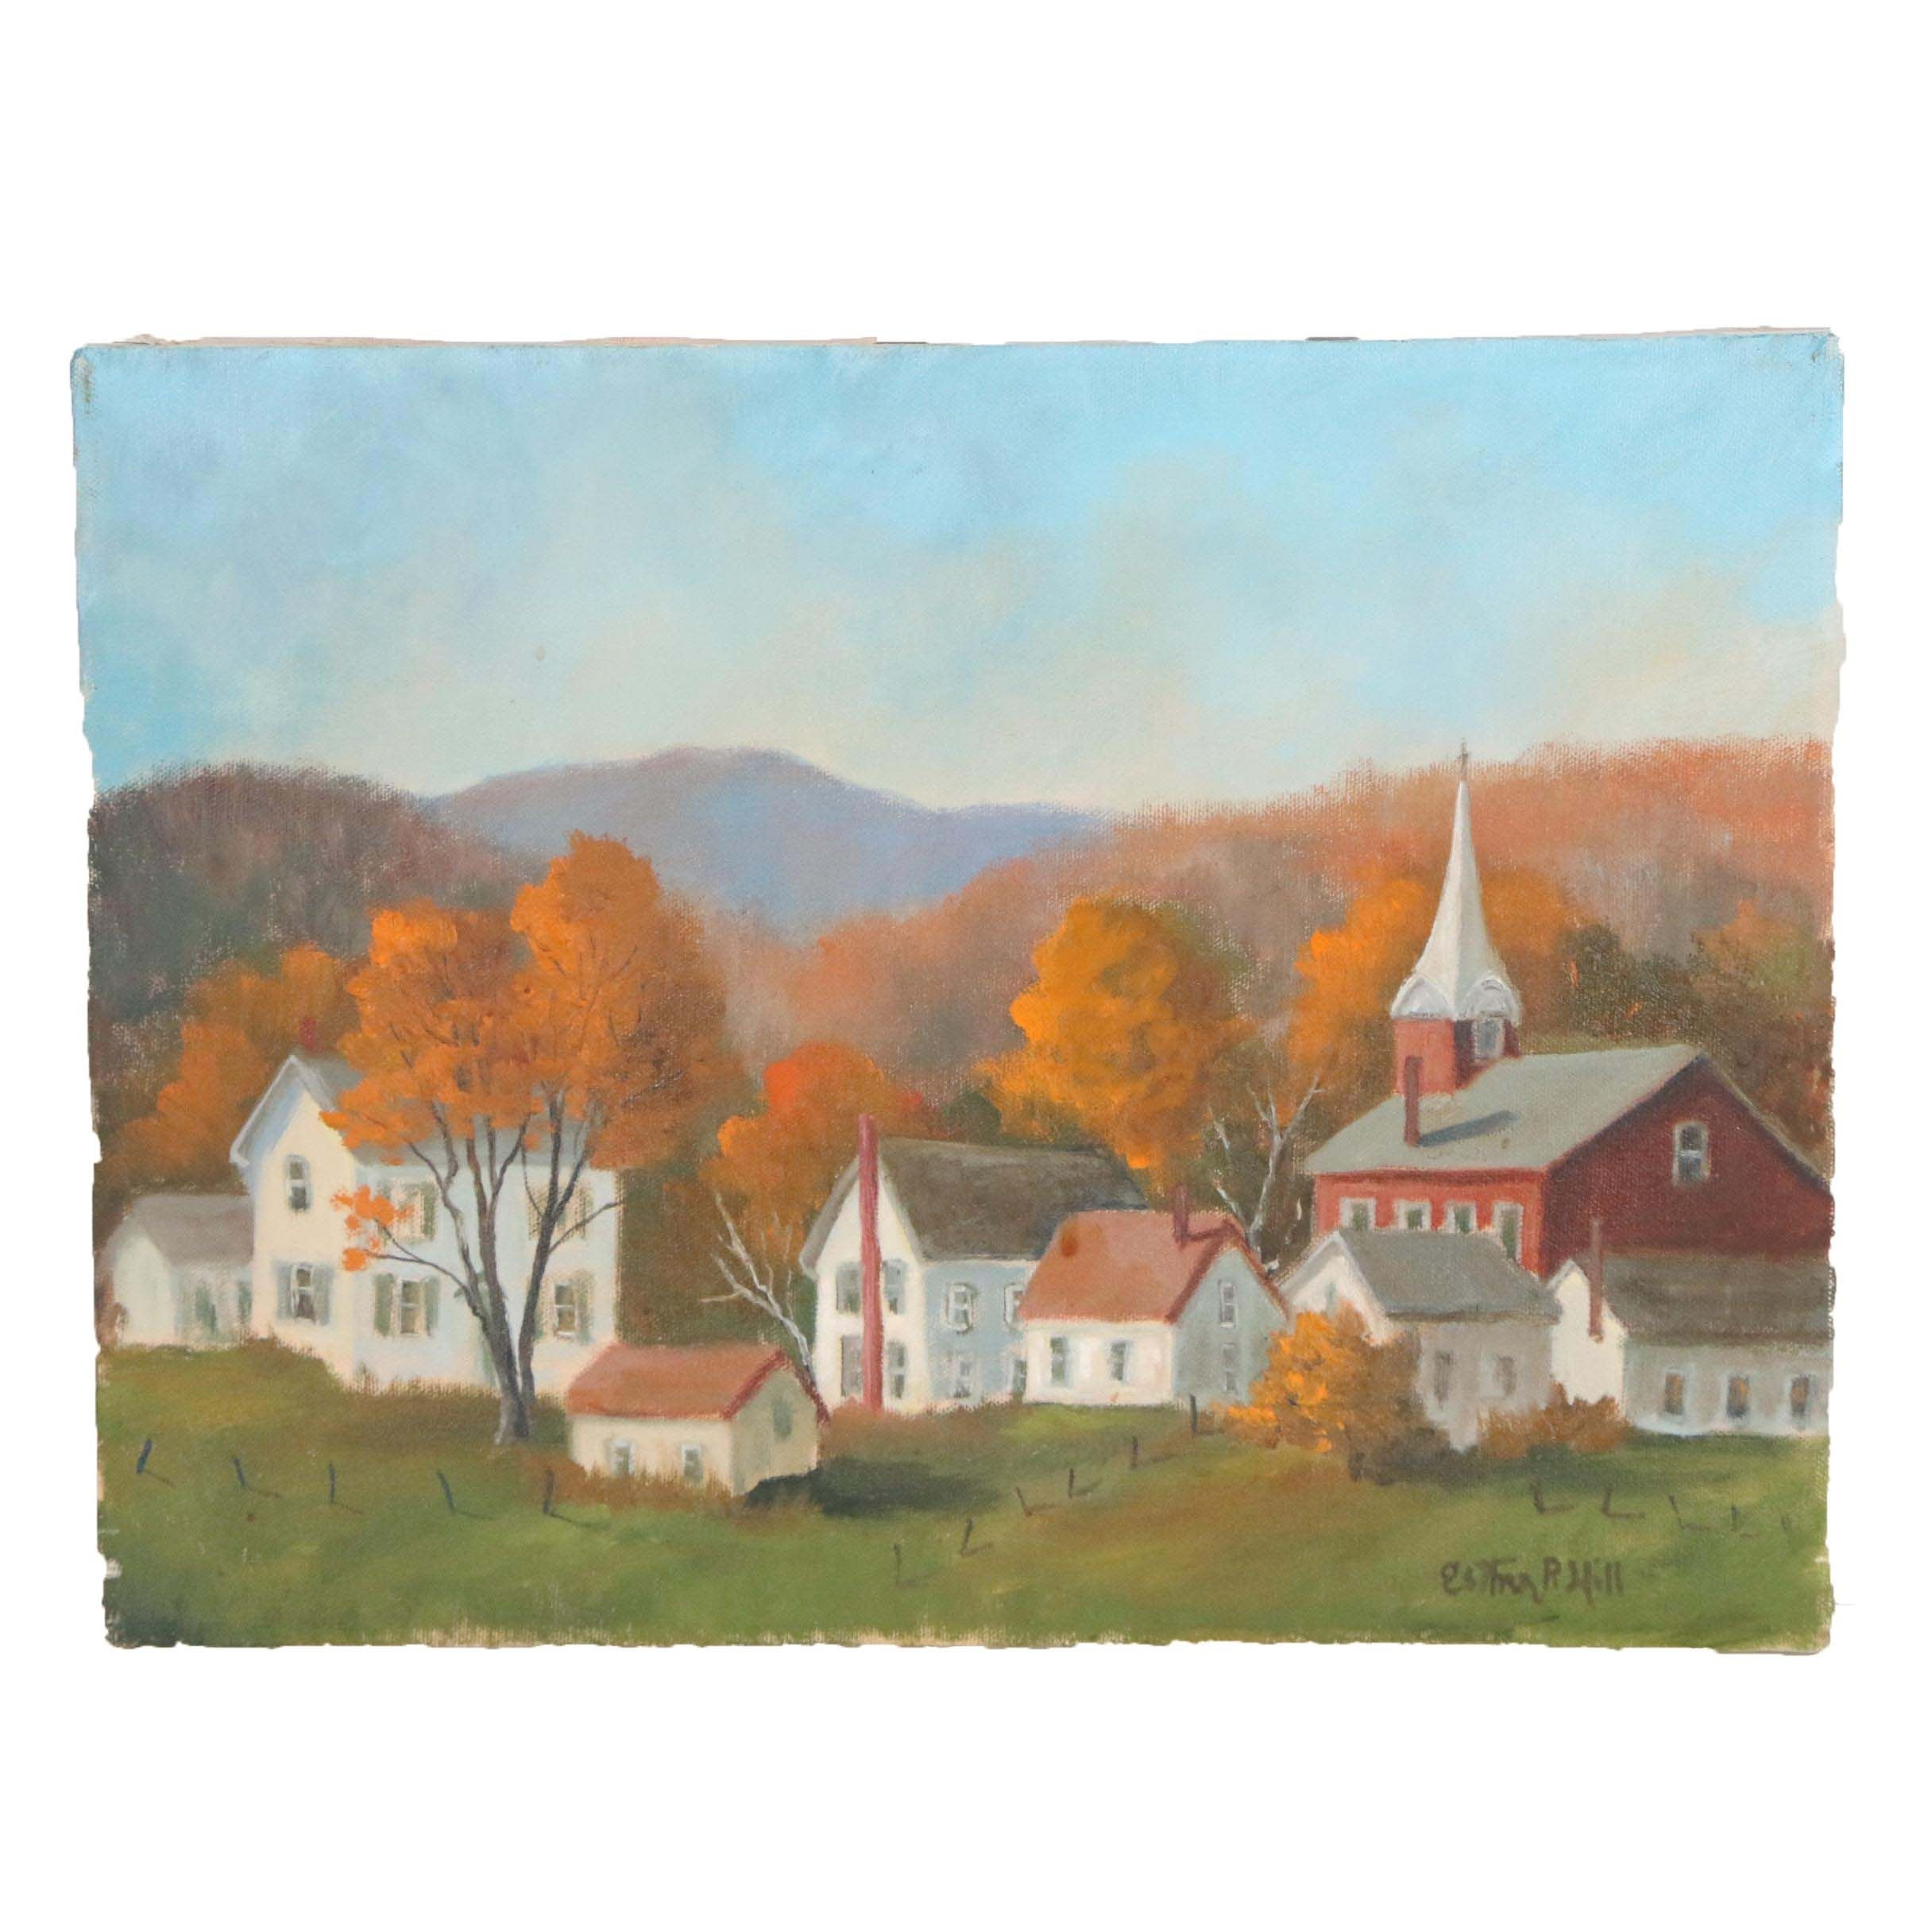 Esther Hill Oil Painting of Autumnal Town Scene